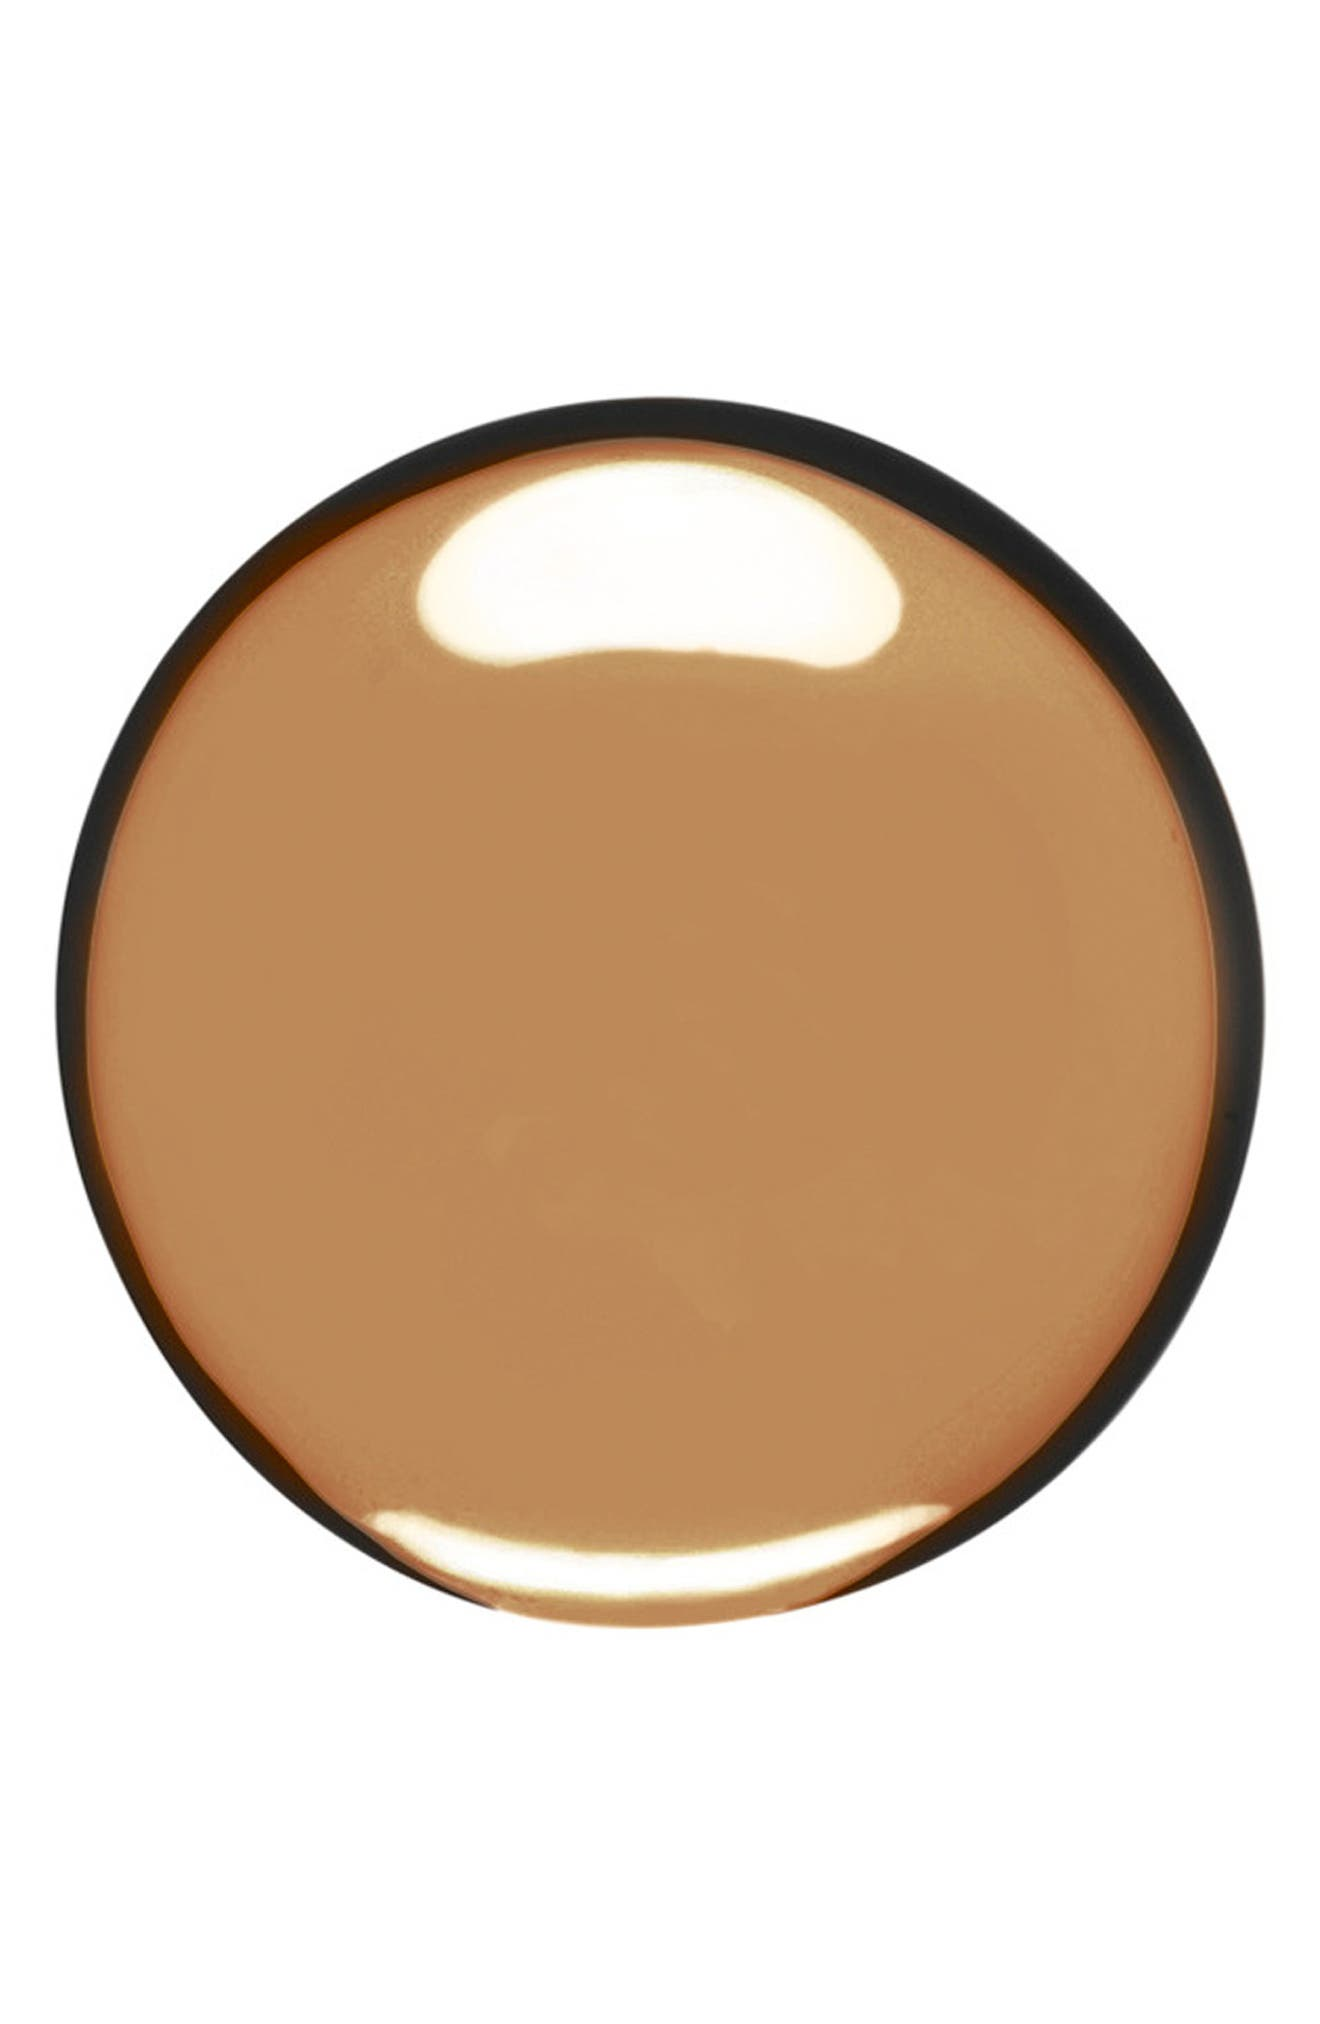 CLARINS, Skin Illusion Natural Hydrating Foundation, Alternate thumbnail 6, color, 116.5 - COFFEE